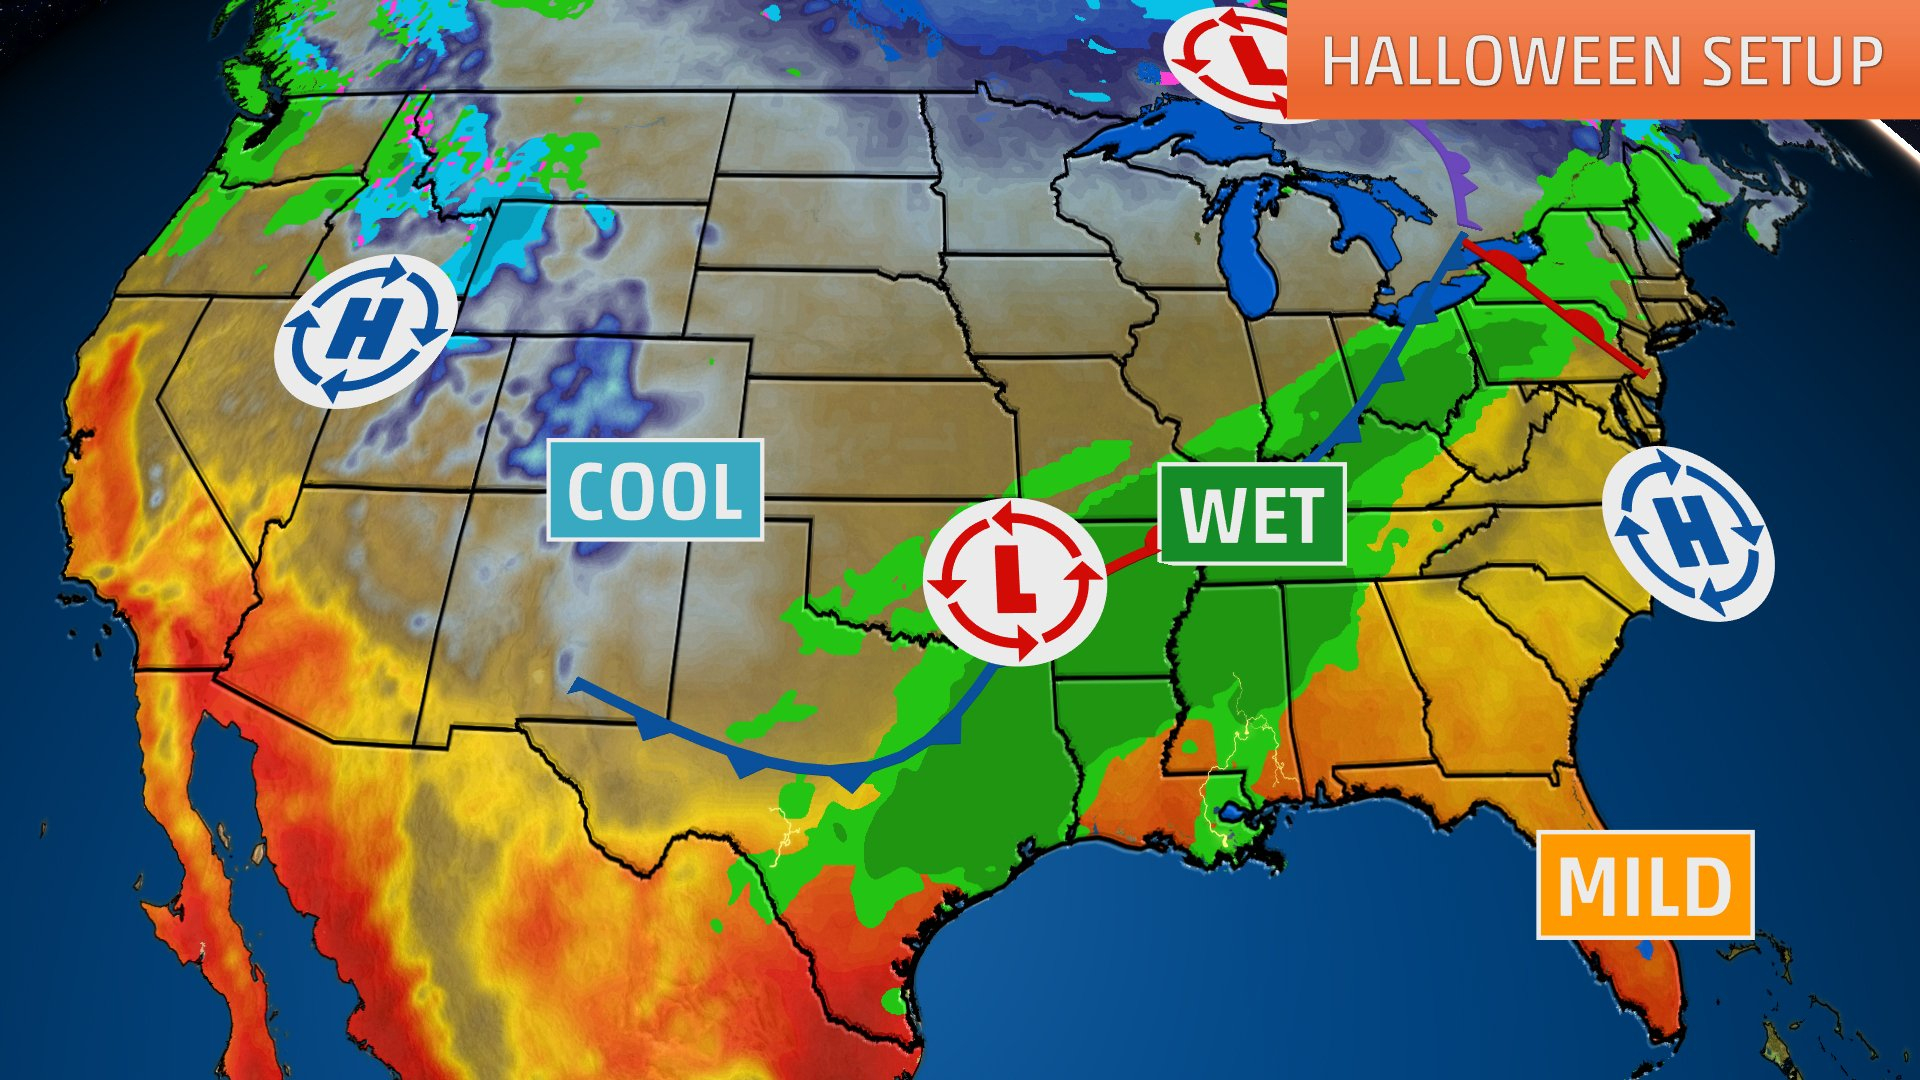 Halloween Weather Forecast: Wet Conditions From Texas To Ohio Valley - Northern California Radar Map